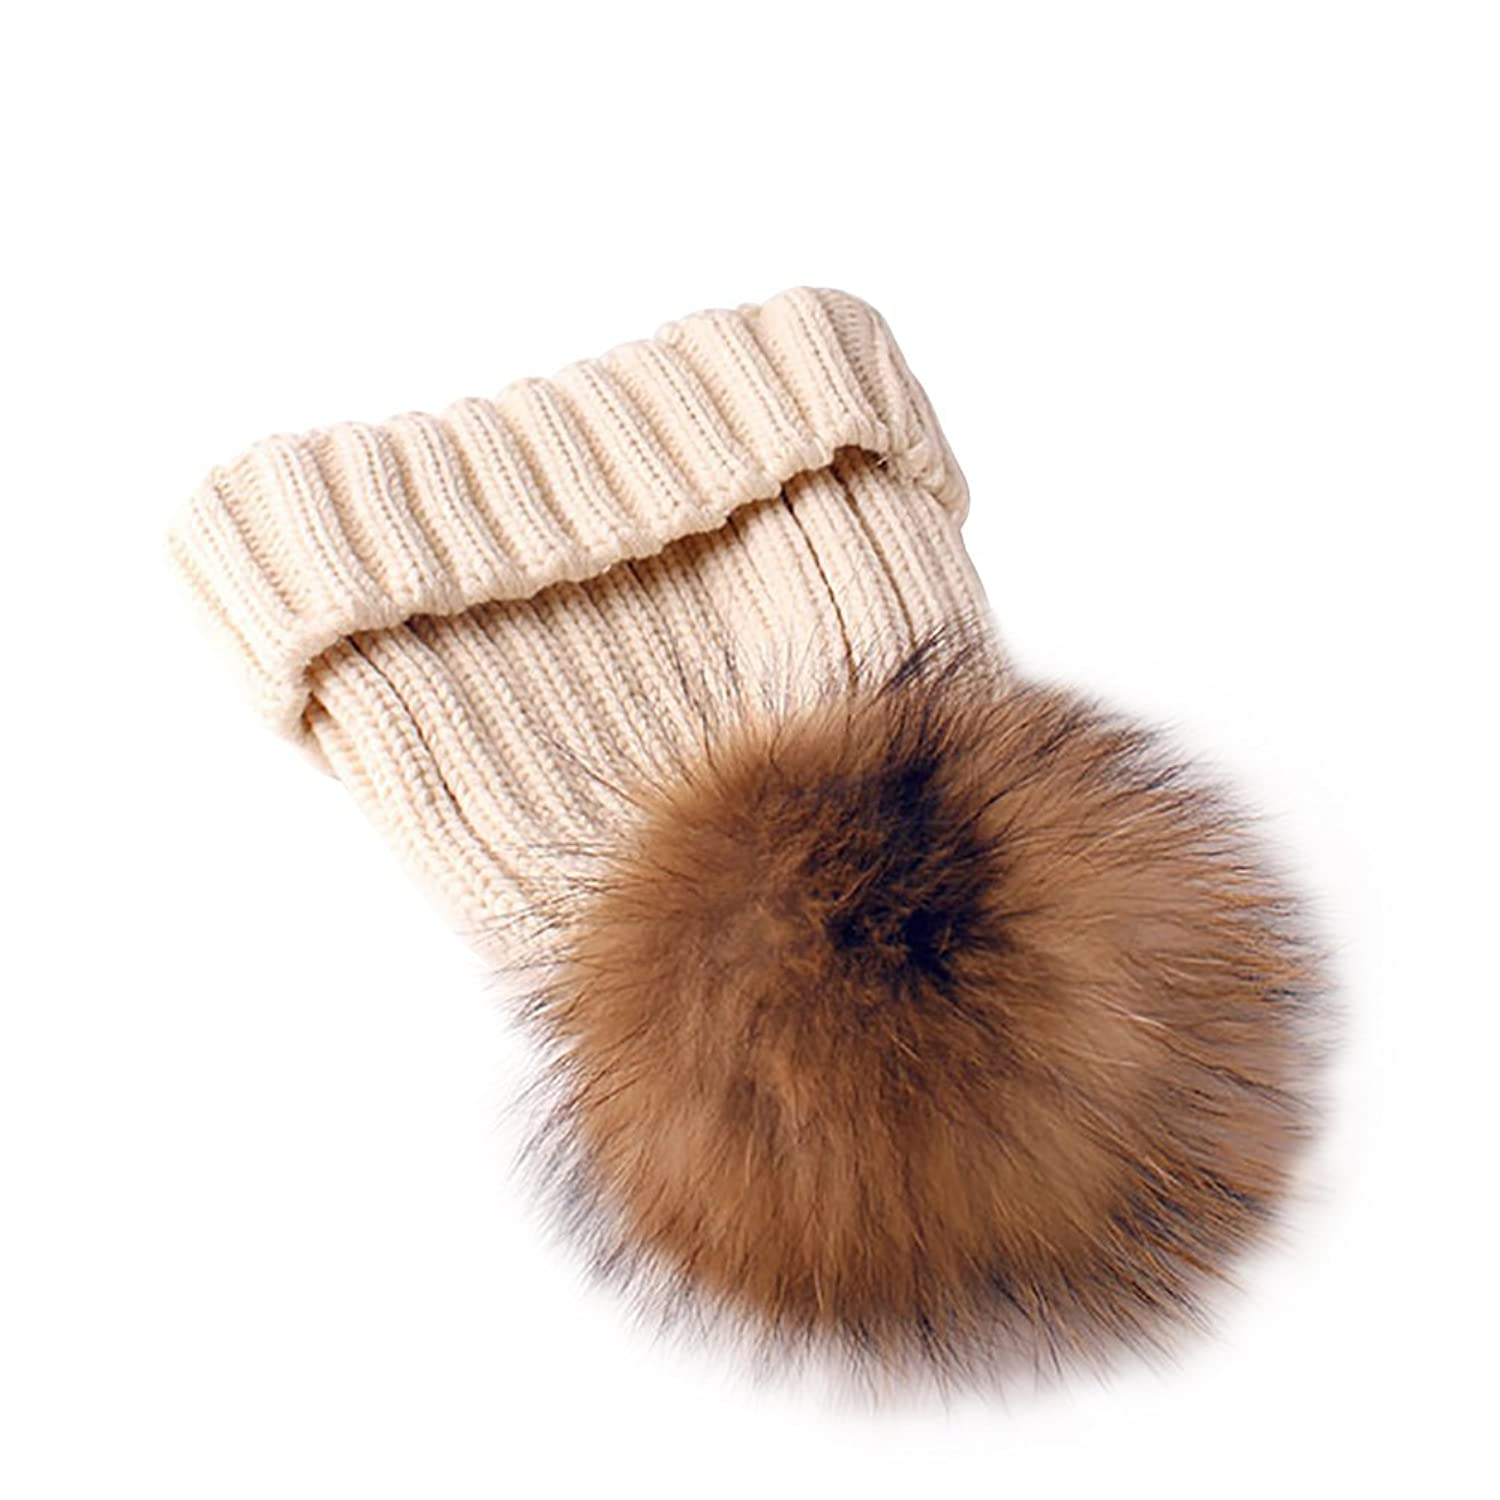 Pom Pom Beanie Hat, Ocaler Boys Girls Winter Warm Knit Beanie Raccoon Fur Pom Bobble Hat Crochet Beanie Ski Cap for Children